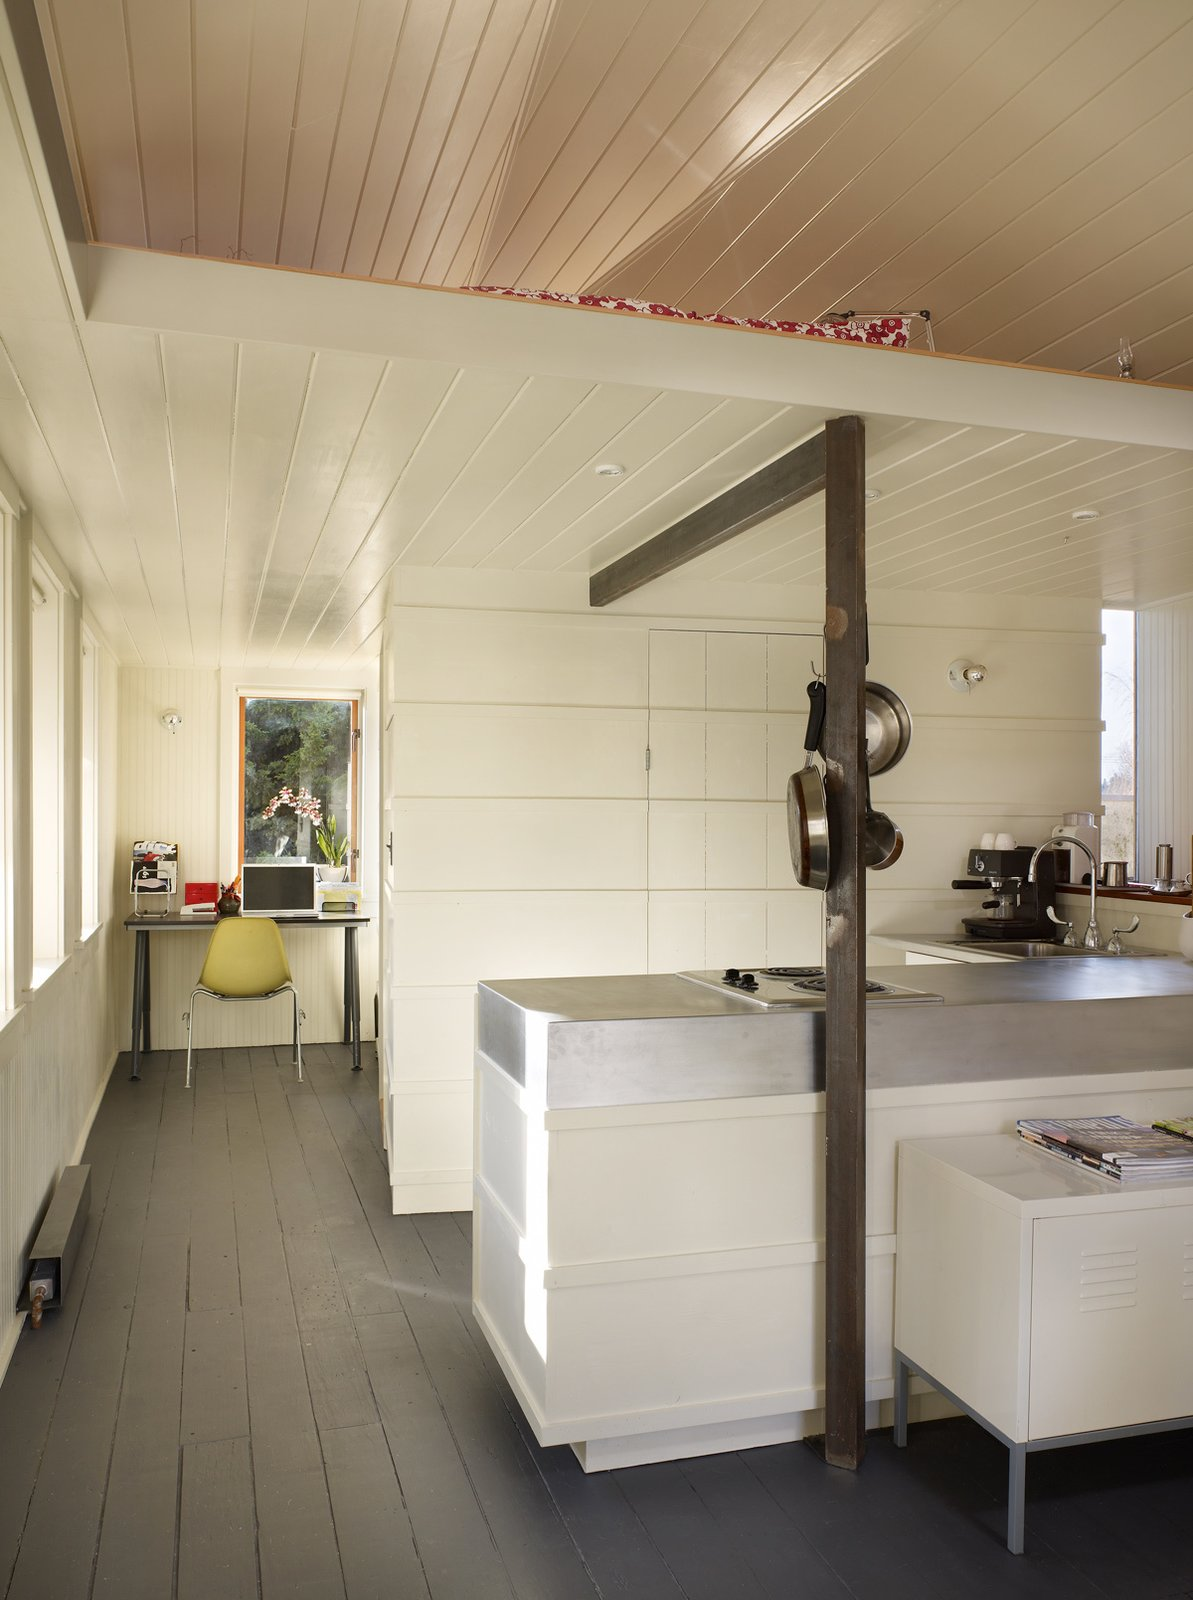 A utilitarian core contains the kitchen, bathroom, closet, and loft ladder. The kitchen's walls are clad with recycled wooden boards trimmed with horizontal battens that hide the oven and refrigerator from view.  Photo 6 of 8 in Tiny 1920s Garage Transformed Into a Charming Studio